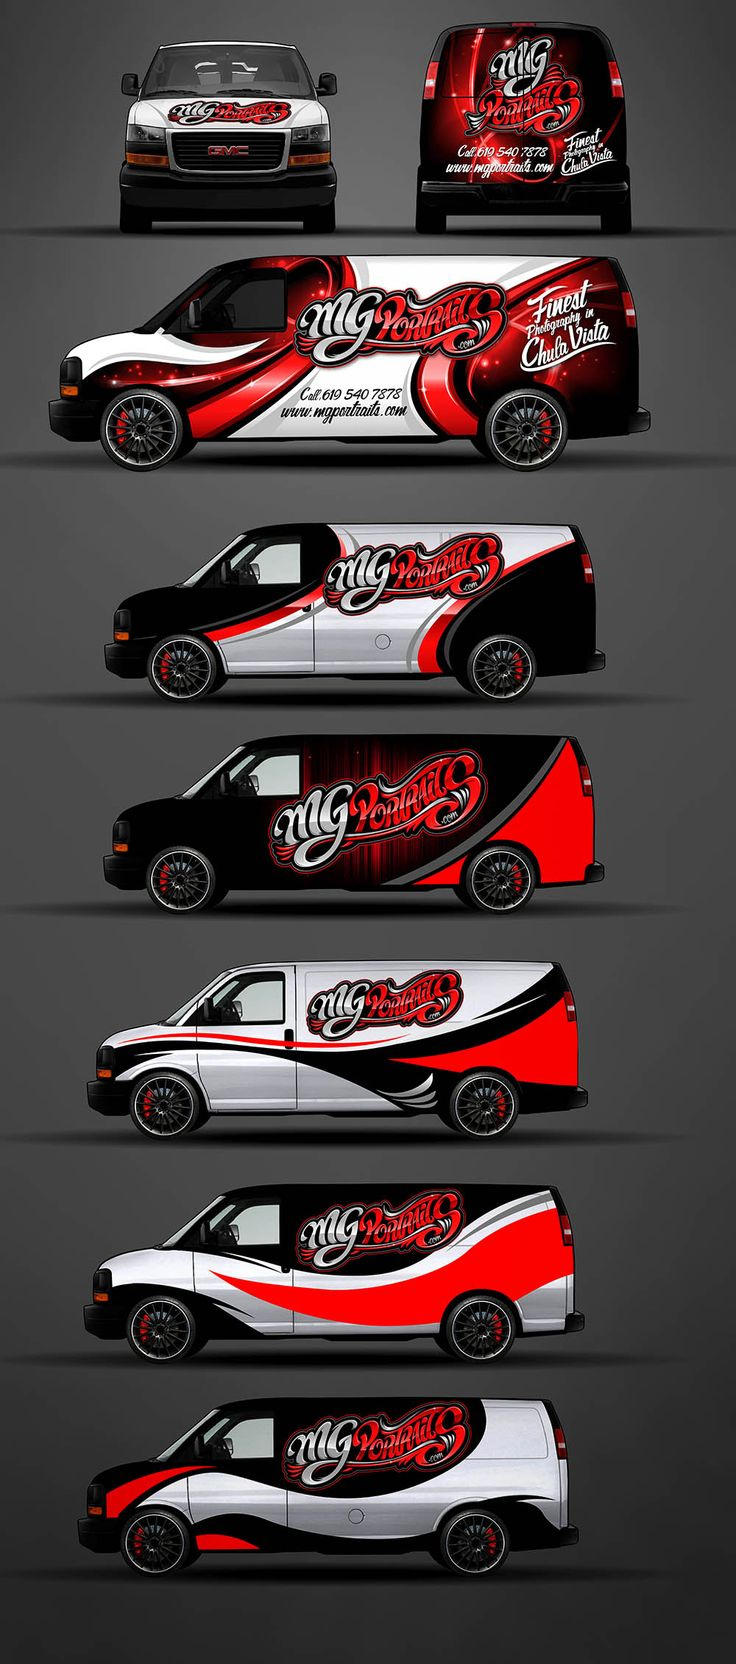 Car sticker design pinterest - Wrap Design Development